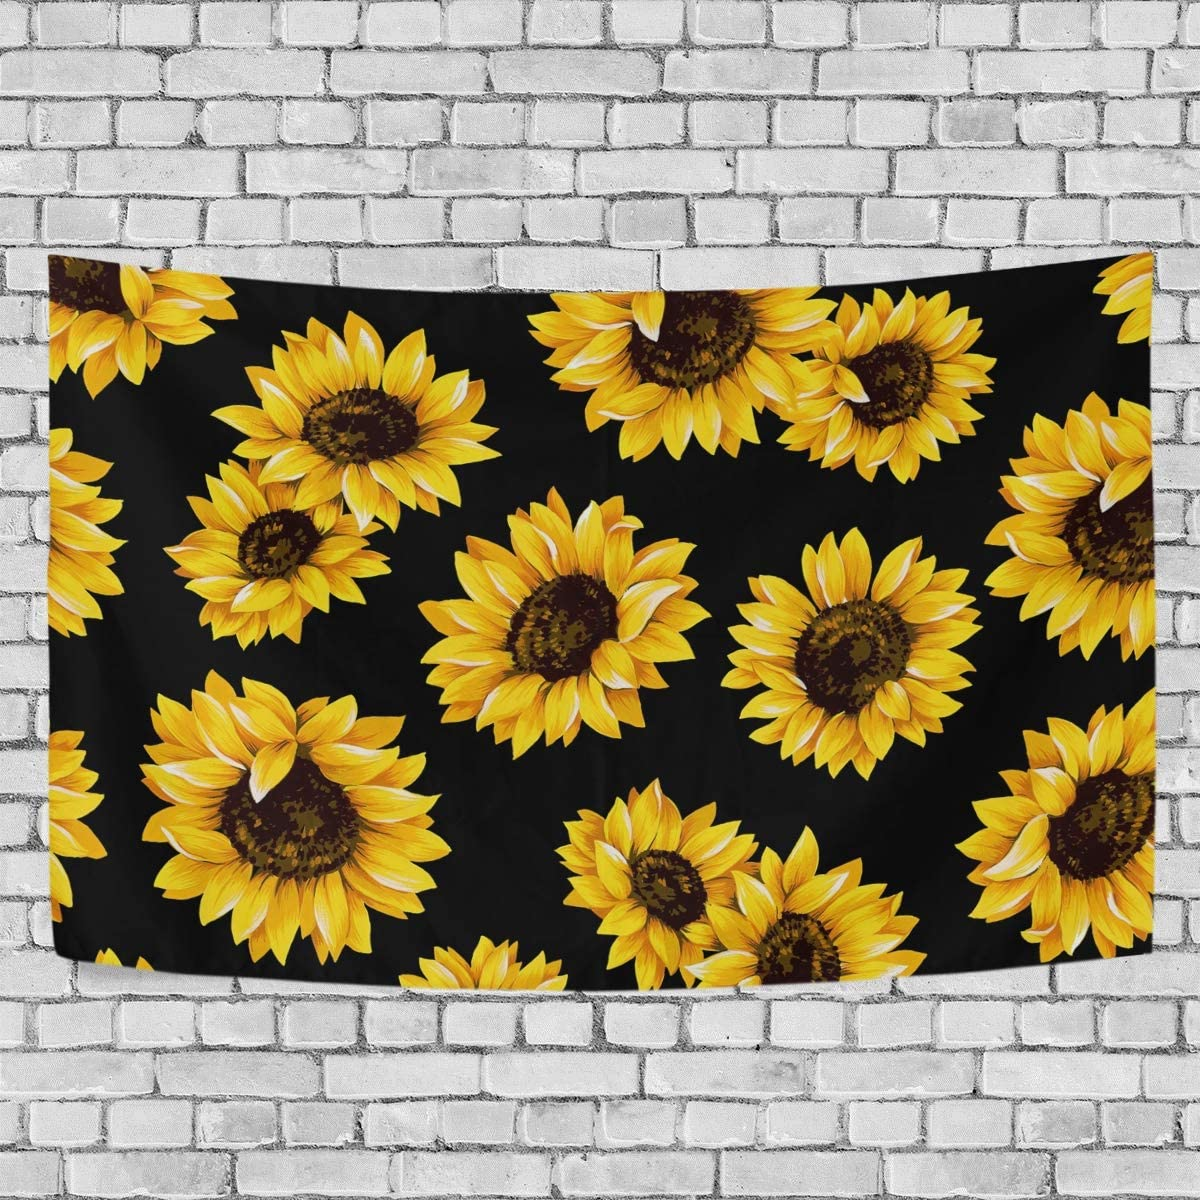 LittleLuck Wall Tapestry Decor Yellow Blooming Sunflowers Black Modern Wall Hanging Artwork Polyester Fabric Cottage Dorm Bedroom Living Room Wall Art Wall Blanket Home Decoration 90 X60